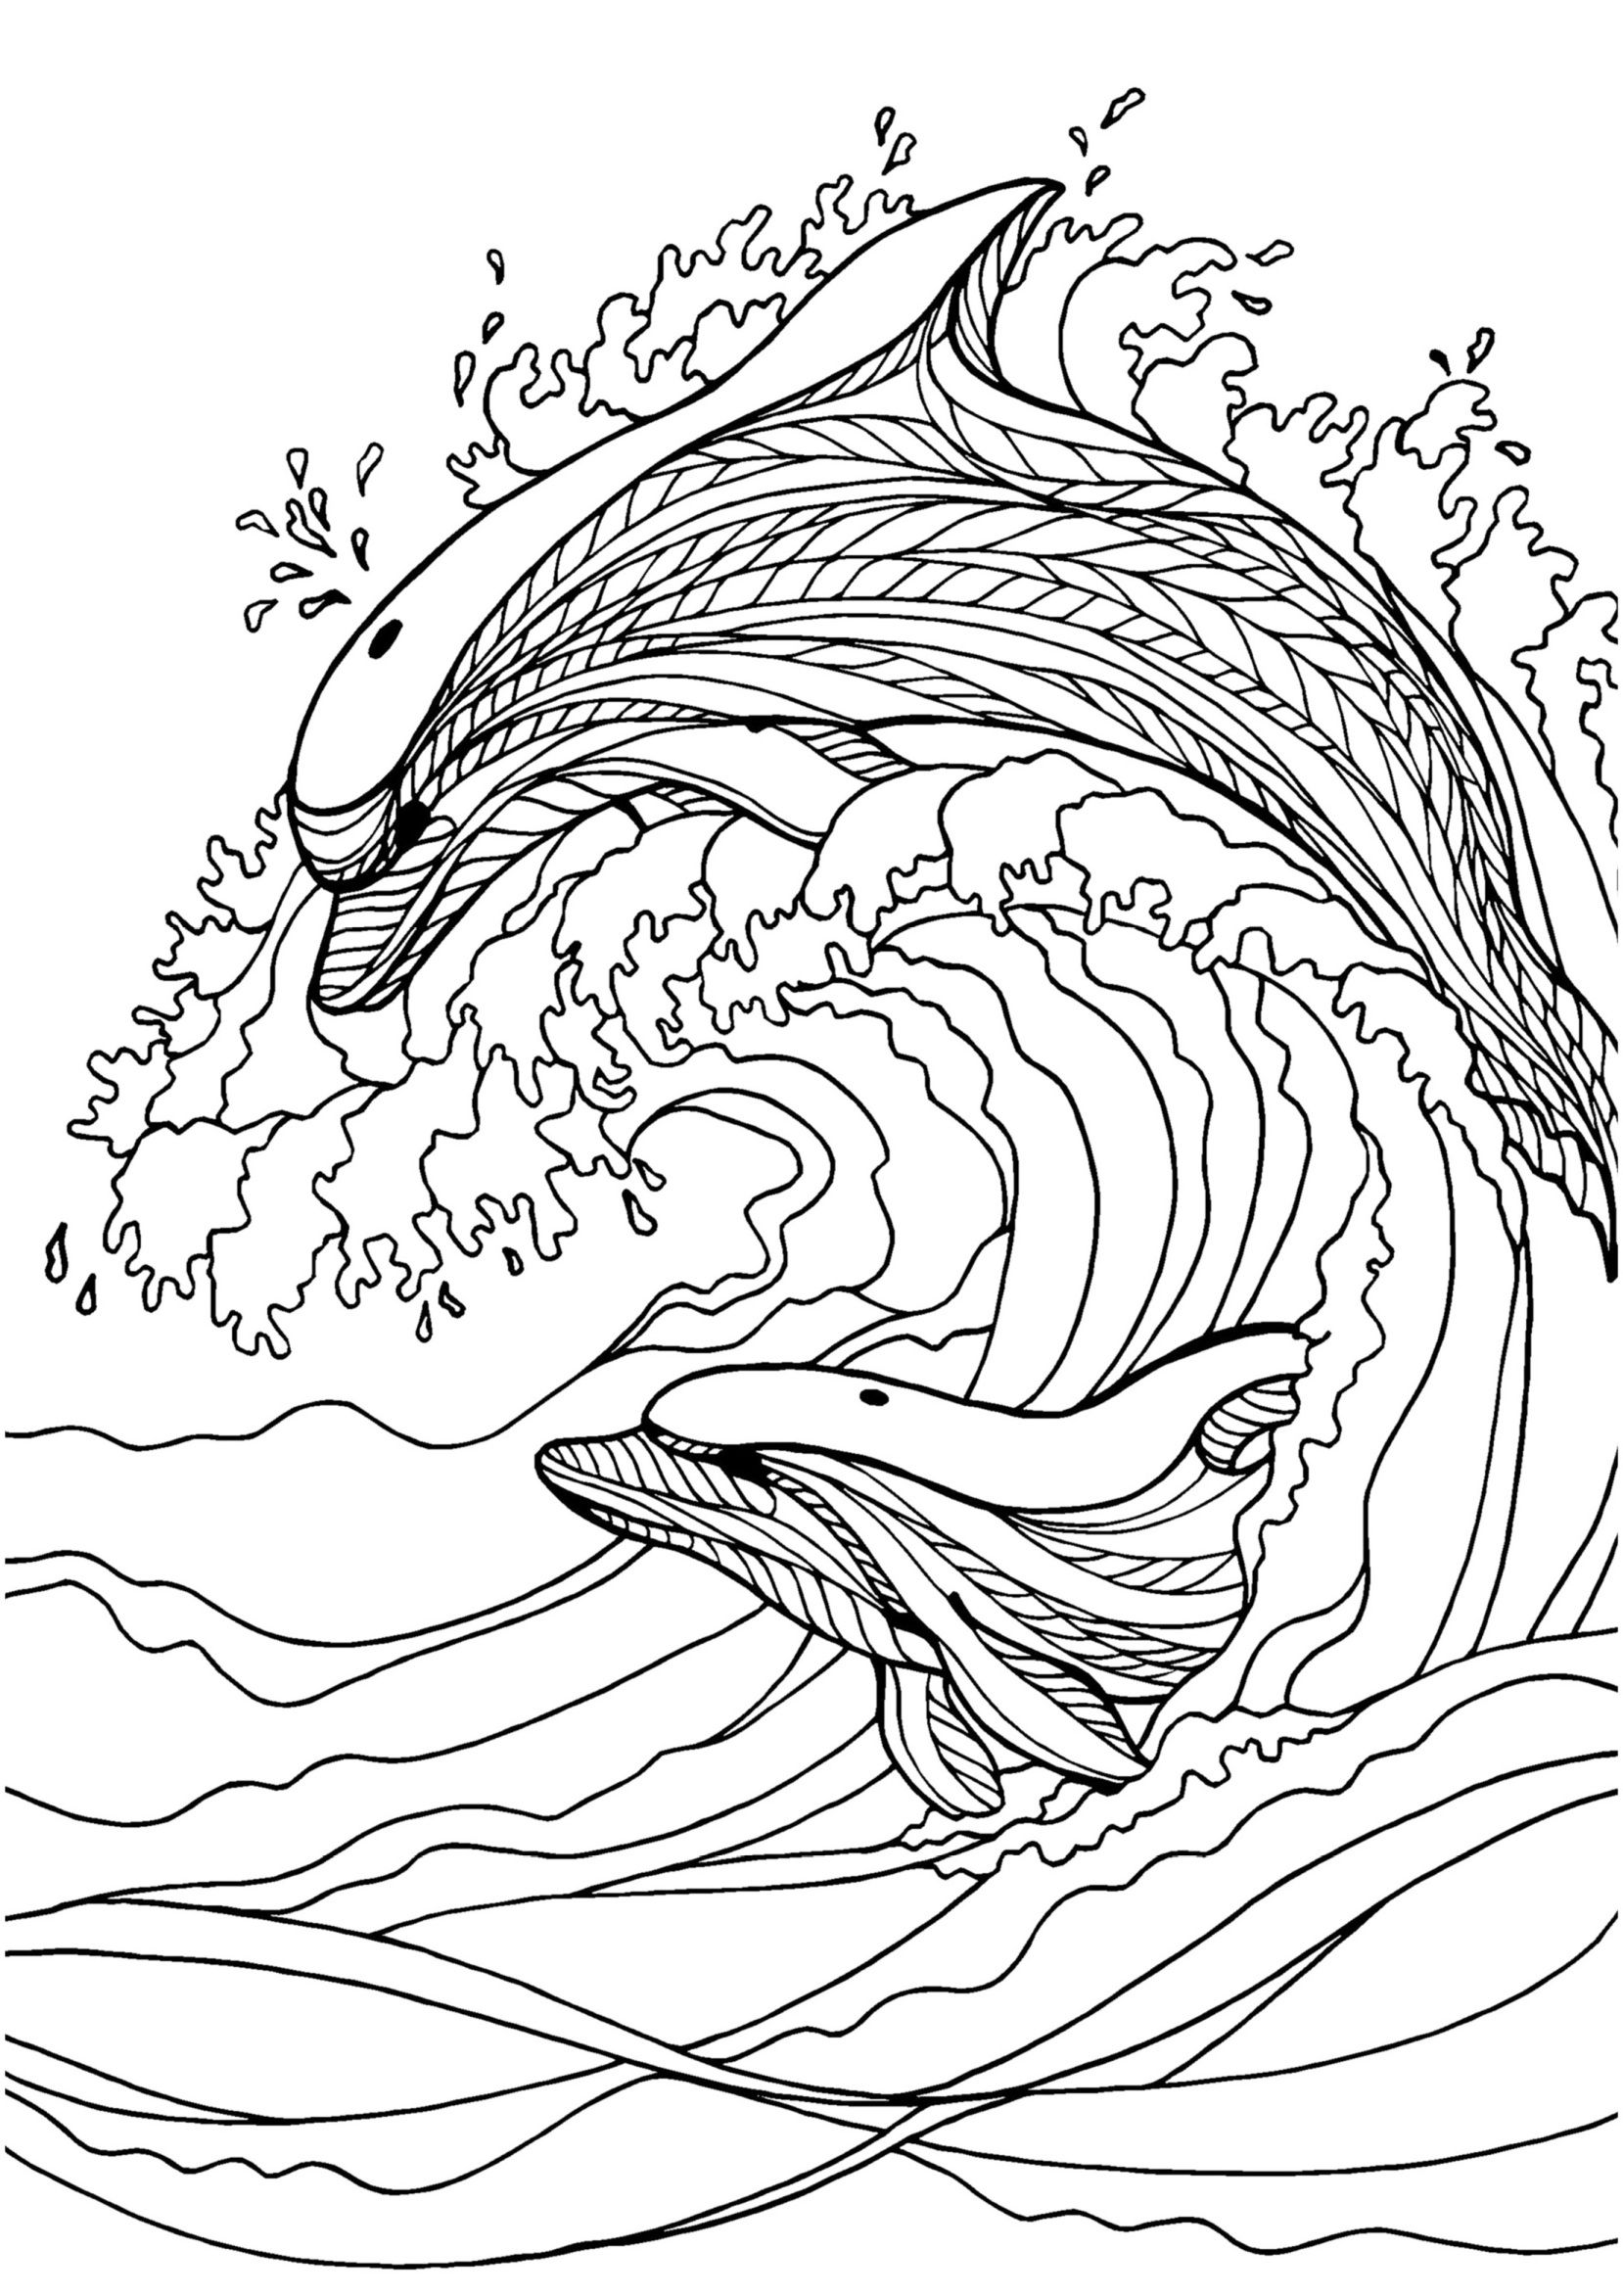 Dolphin Adult Colouring Page Colouring In Sheets